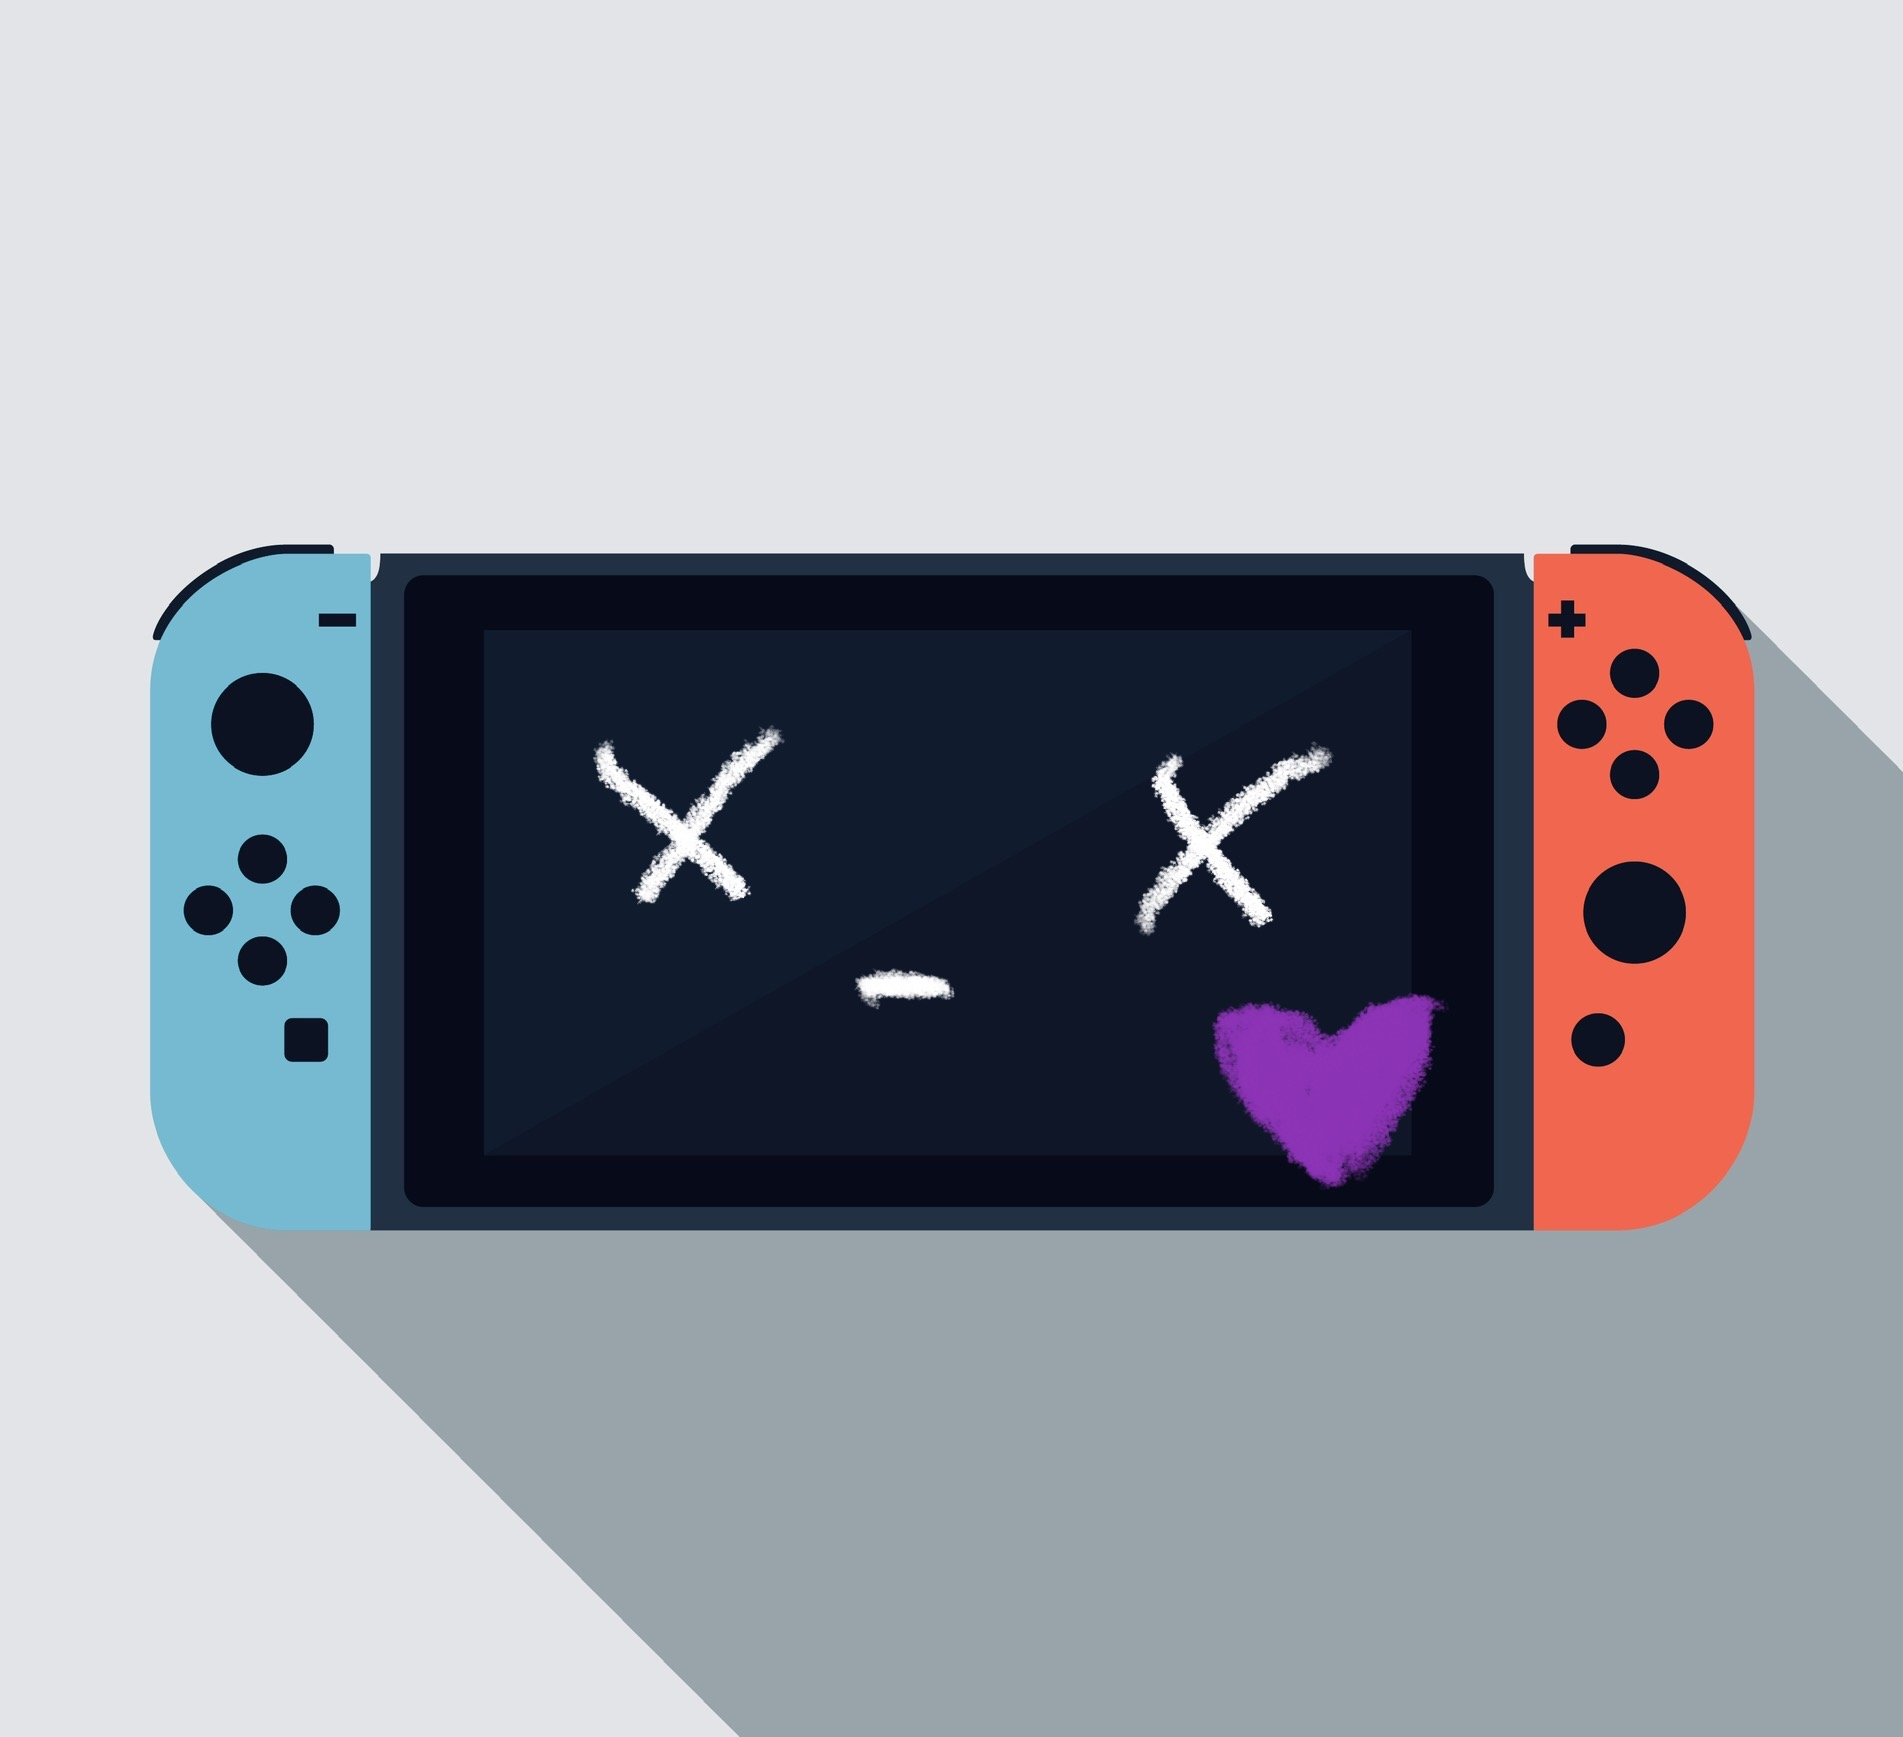 FEATURE: MORE RAD INDIE GAMES TO MAINLINE INTO YOUR SWITCH EXPEDIENTLY